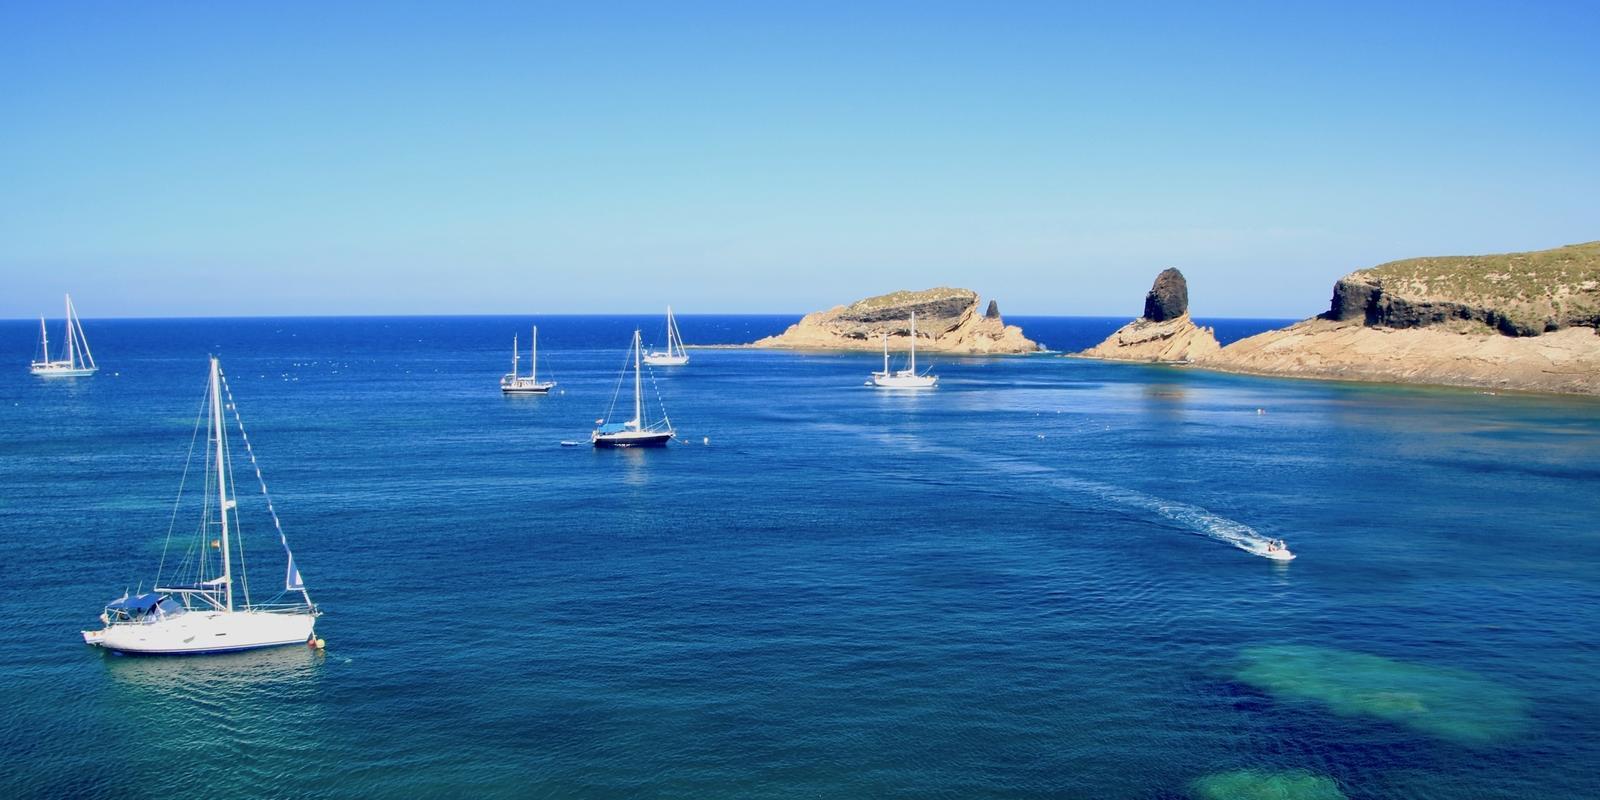 From Ibiza to Valencia in comfort and relax on a large and beautiful crewed boat